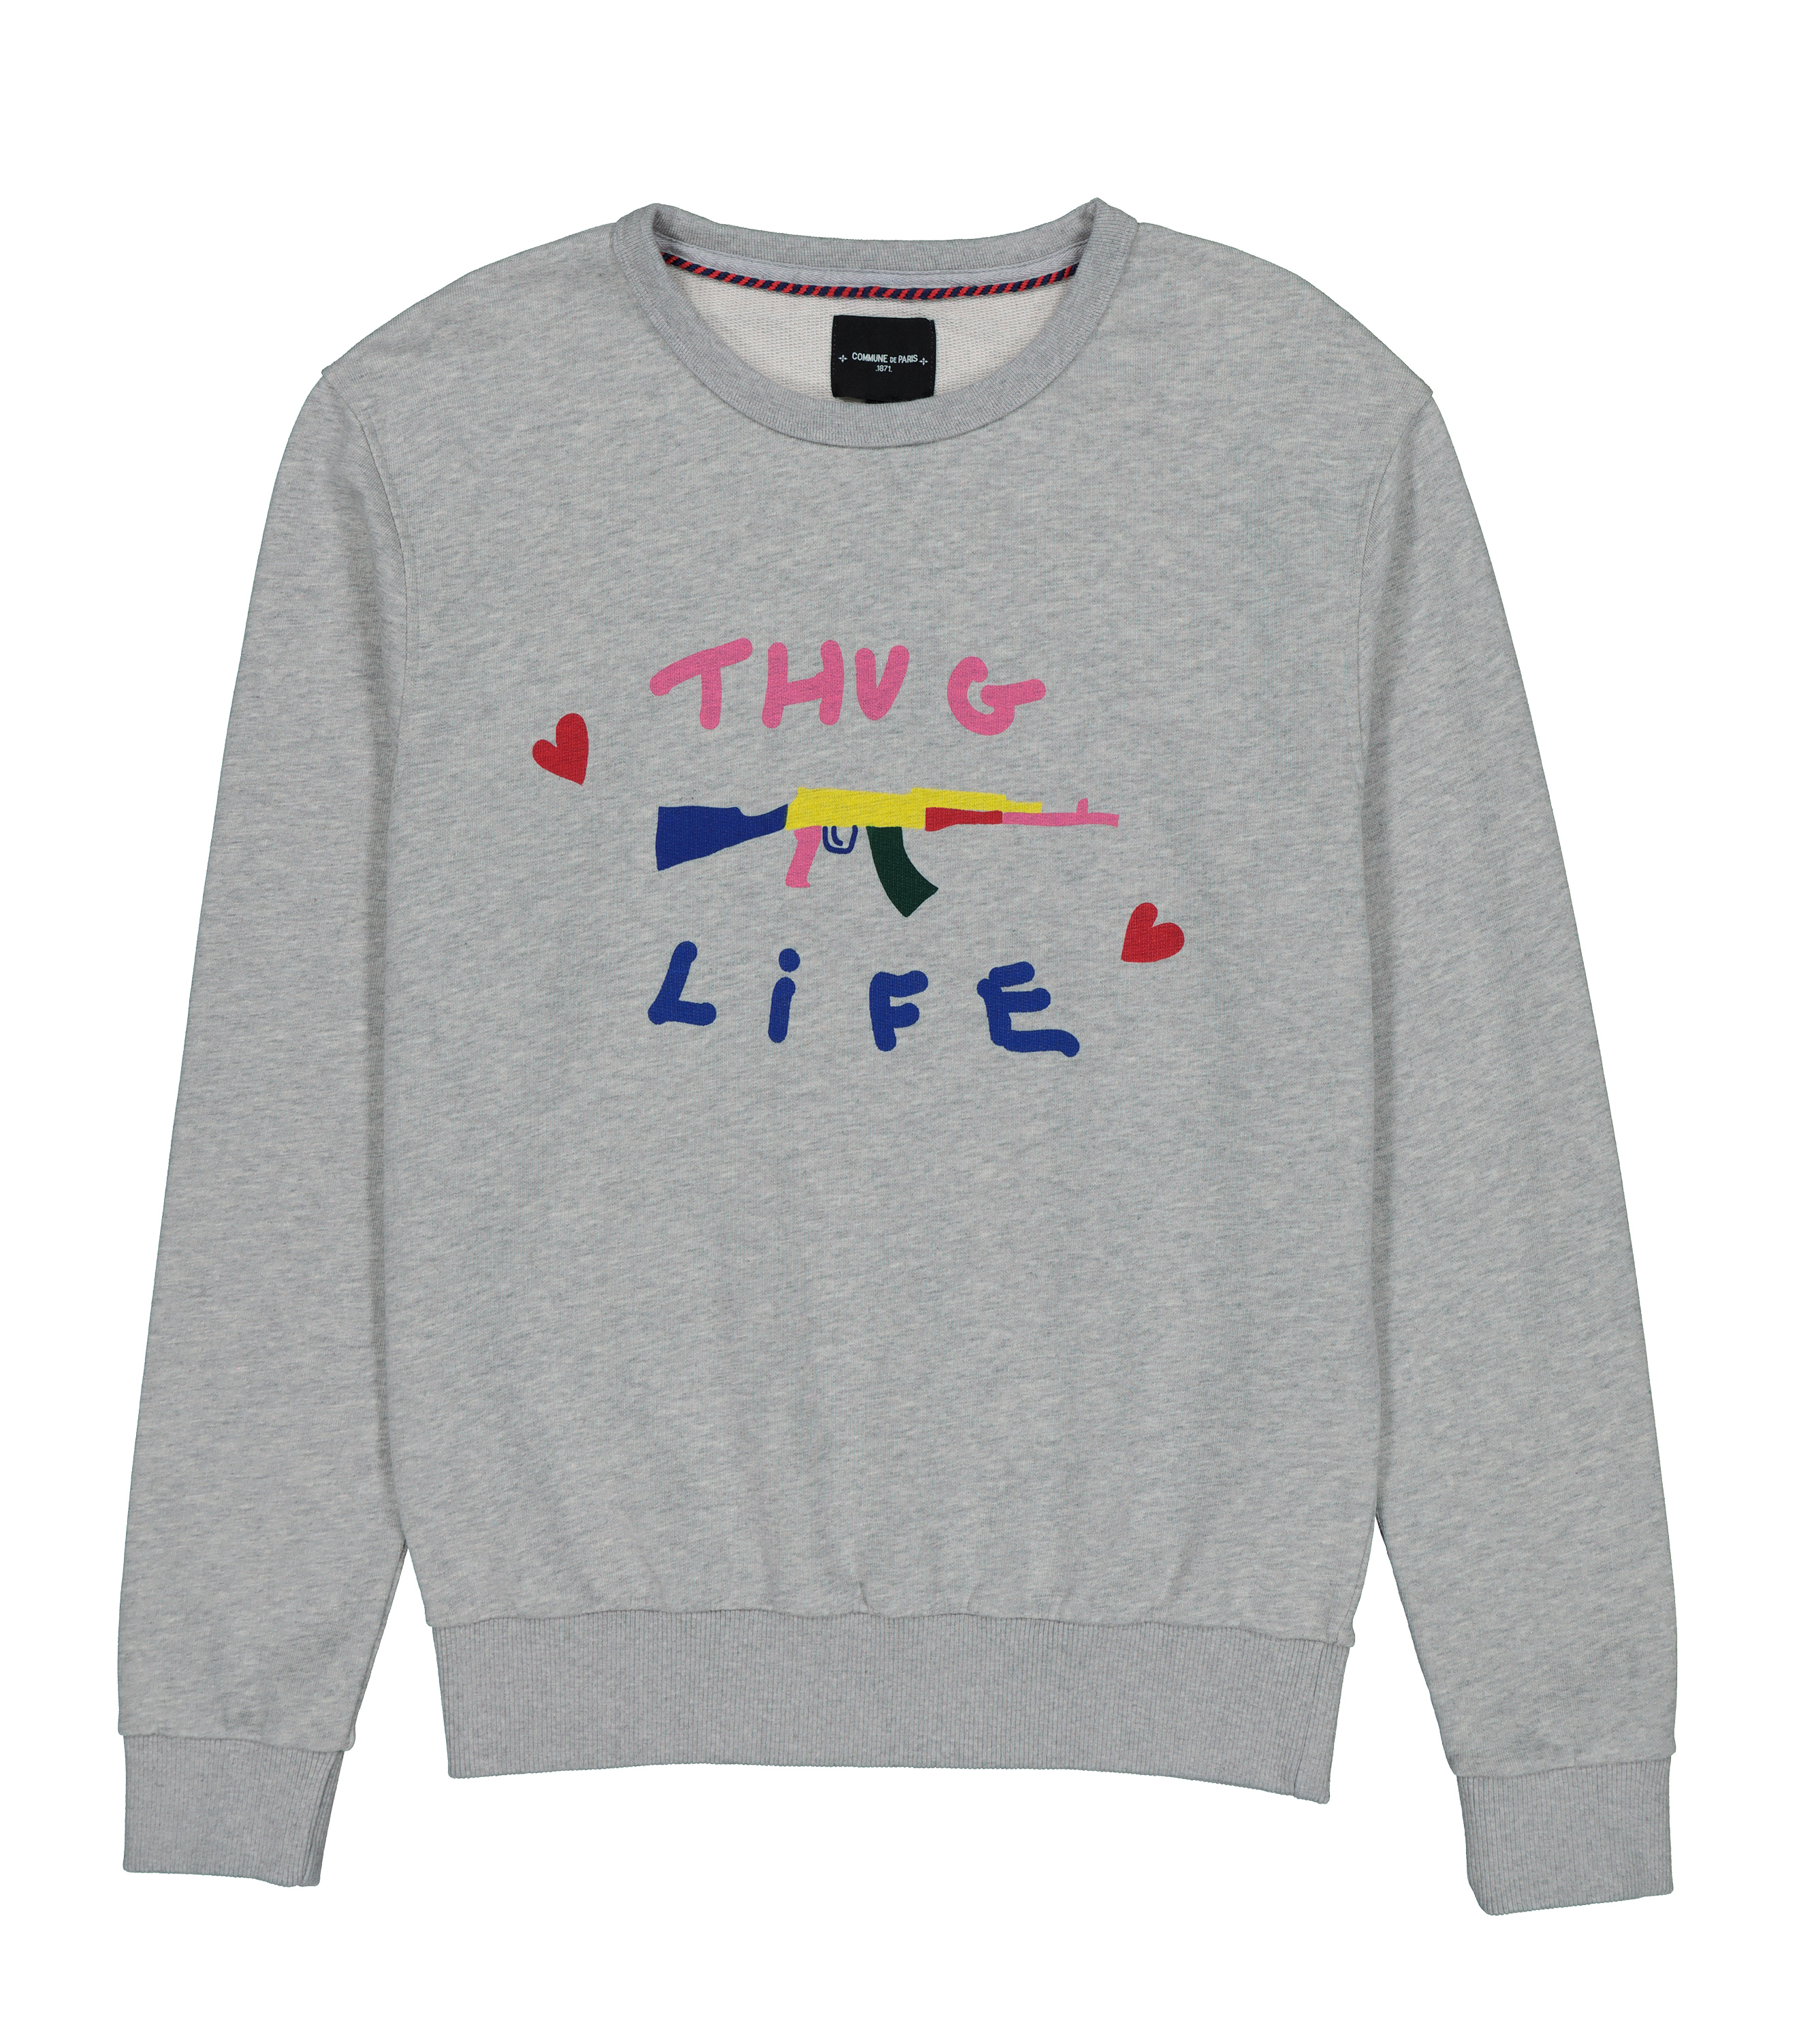 SWEAT LOVEGUN - Gris chine